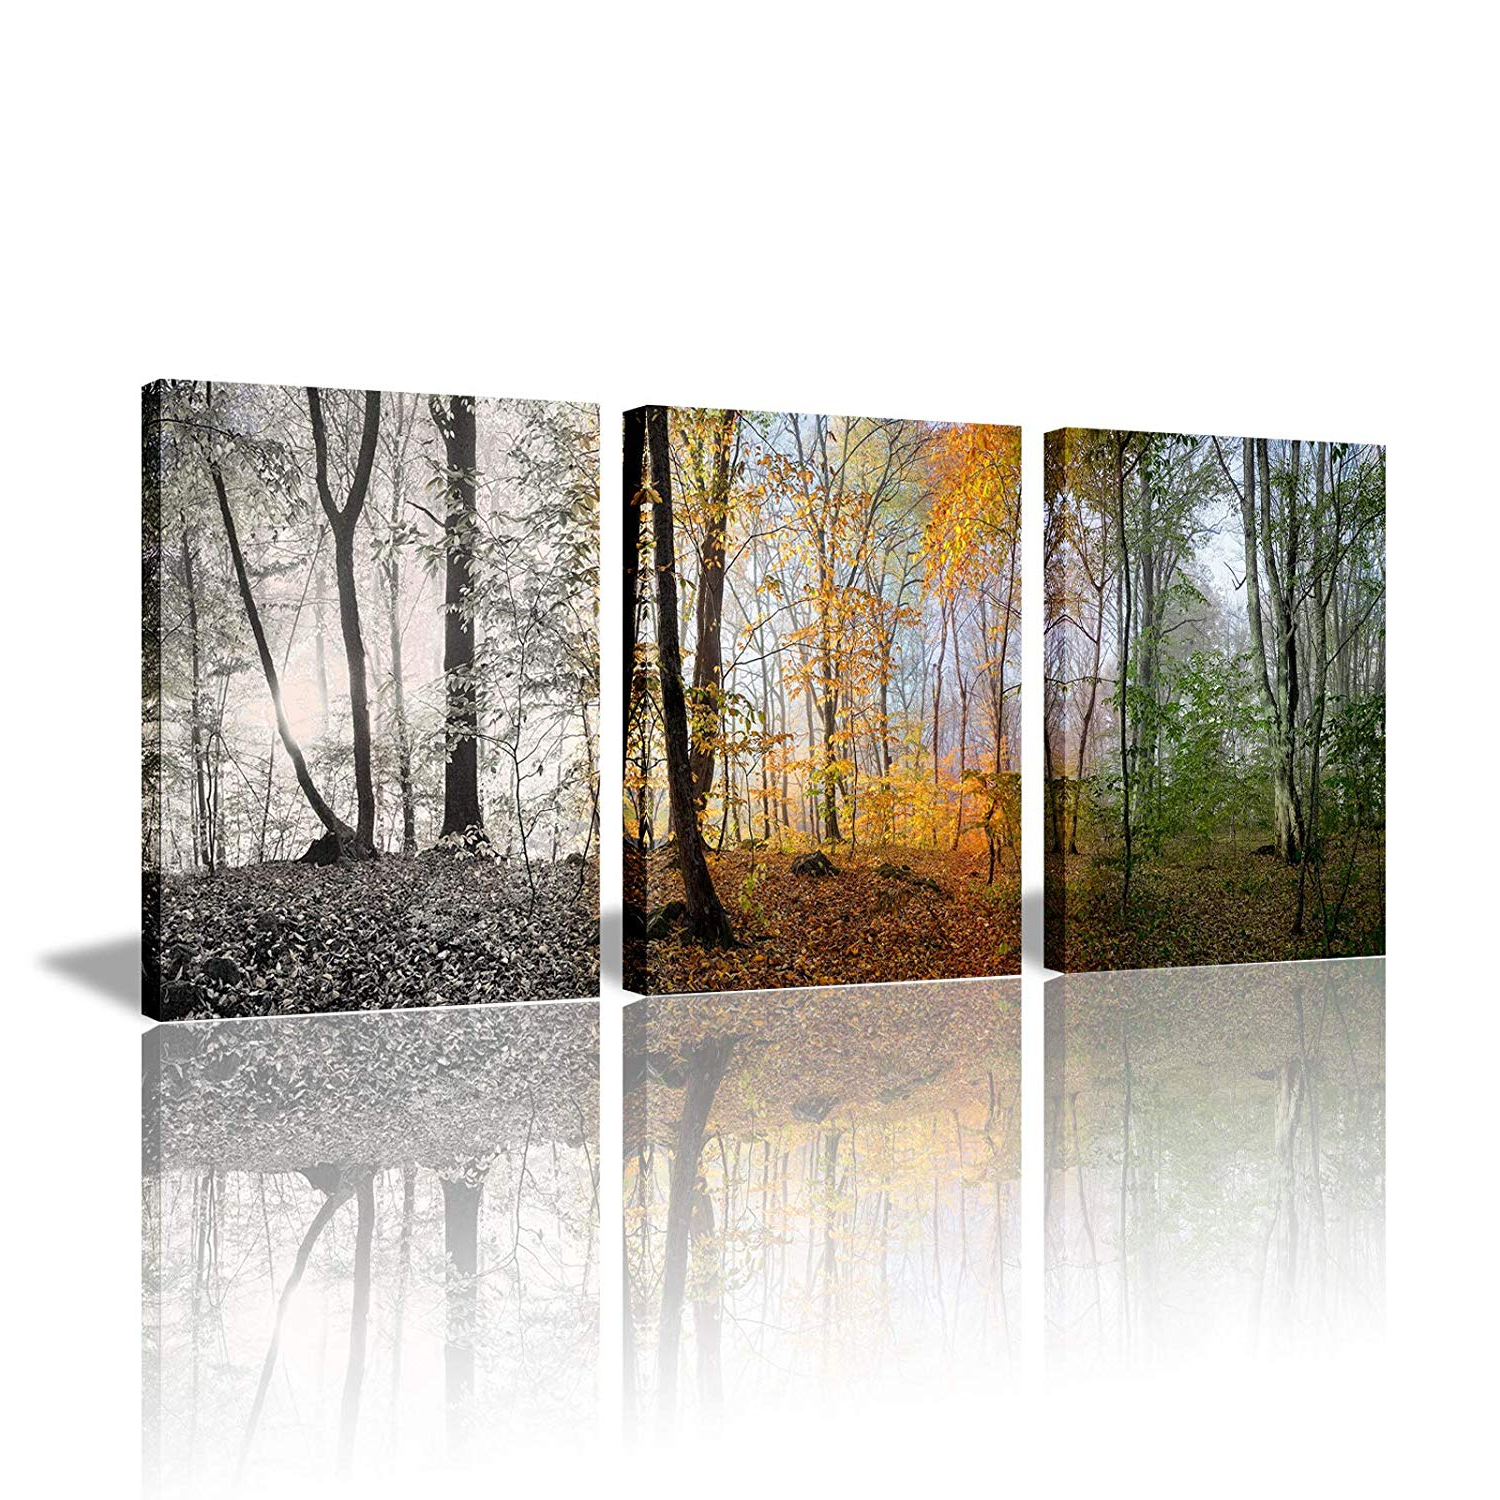 Newest Amazon: 3 Piece Canvas Wall Art Set For Bedroom Decor Nature Pertaining To 3 Piece Magnolia Brown Panel Wall Decor Sets (Gallery 16 of 20)